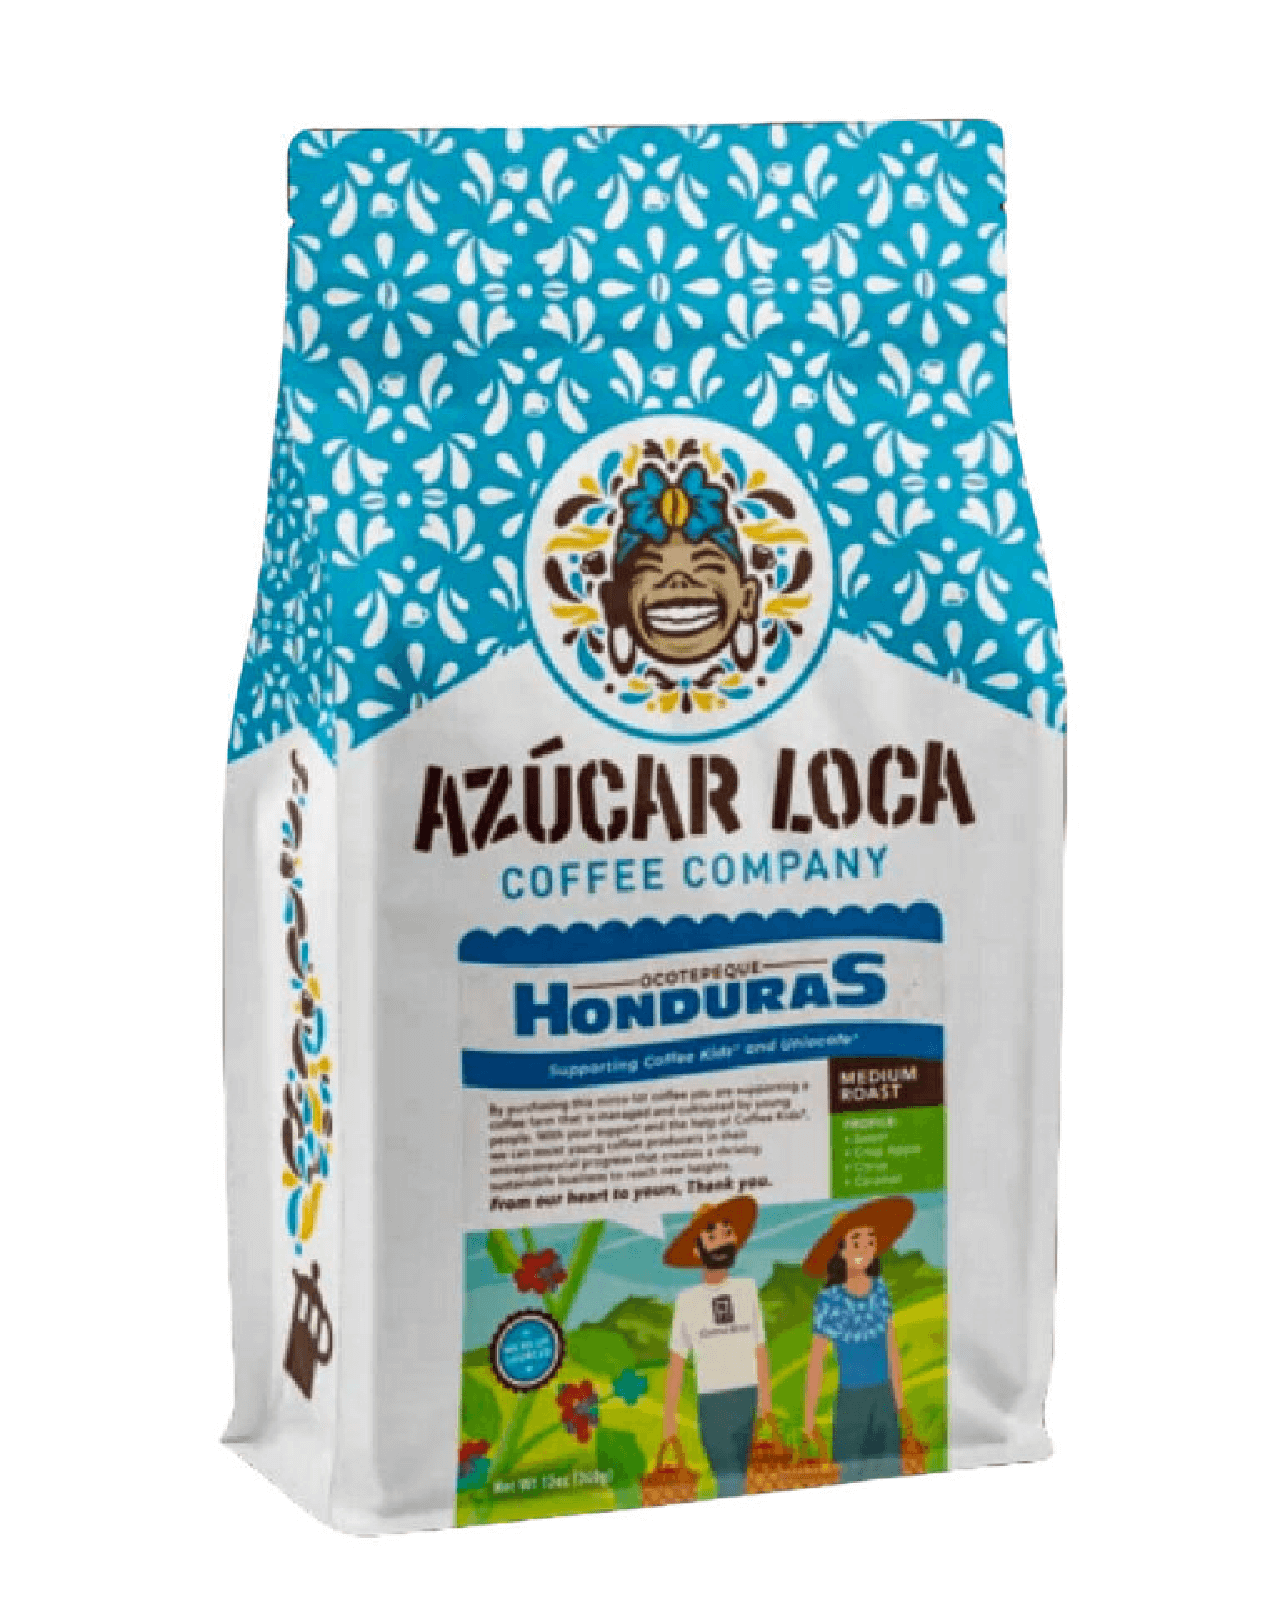 Honduras from Azucar Loca Coffee Company